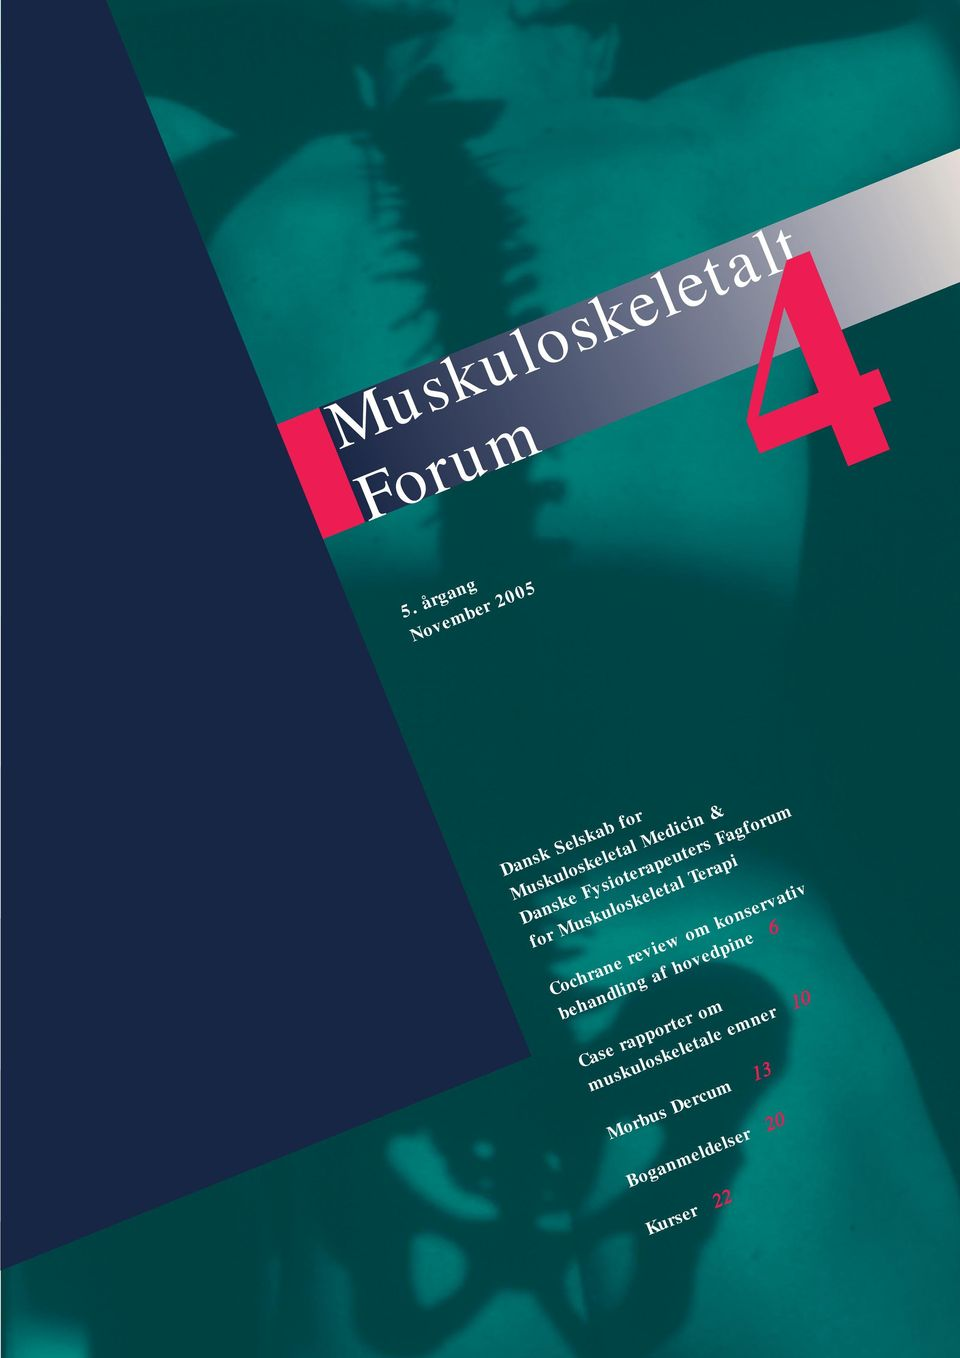 Fysioterapeuters Fagforum for Muskuloskeletal Terapi Cochrane review om